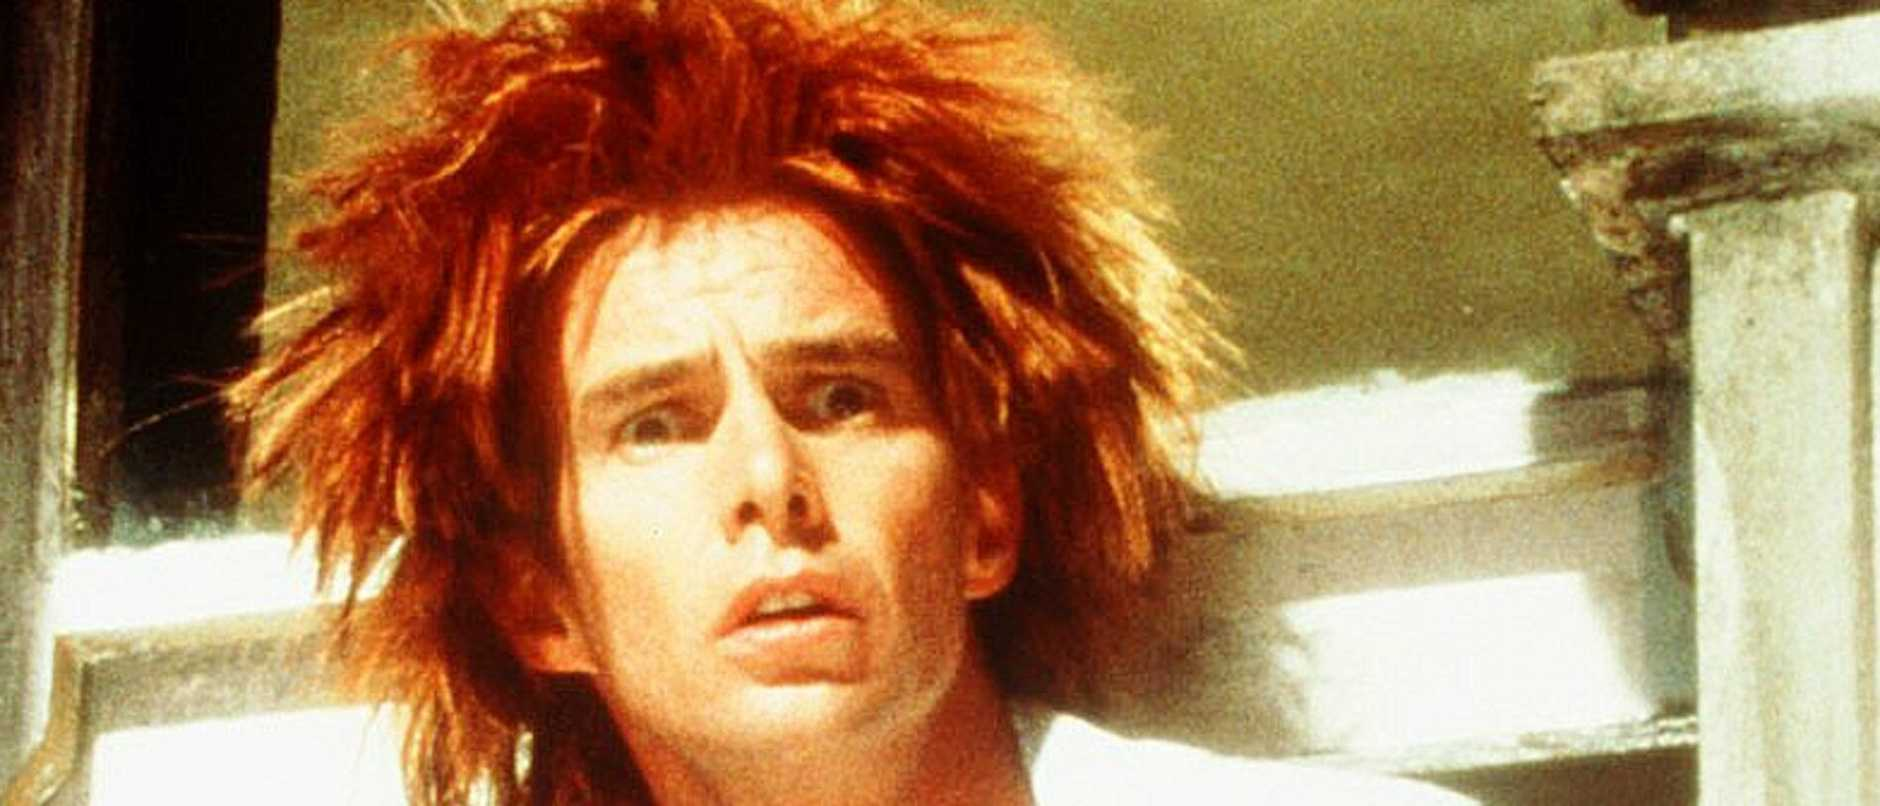 Yahoo Serious in Mr. Accident.